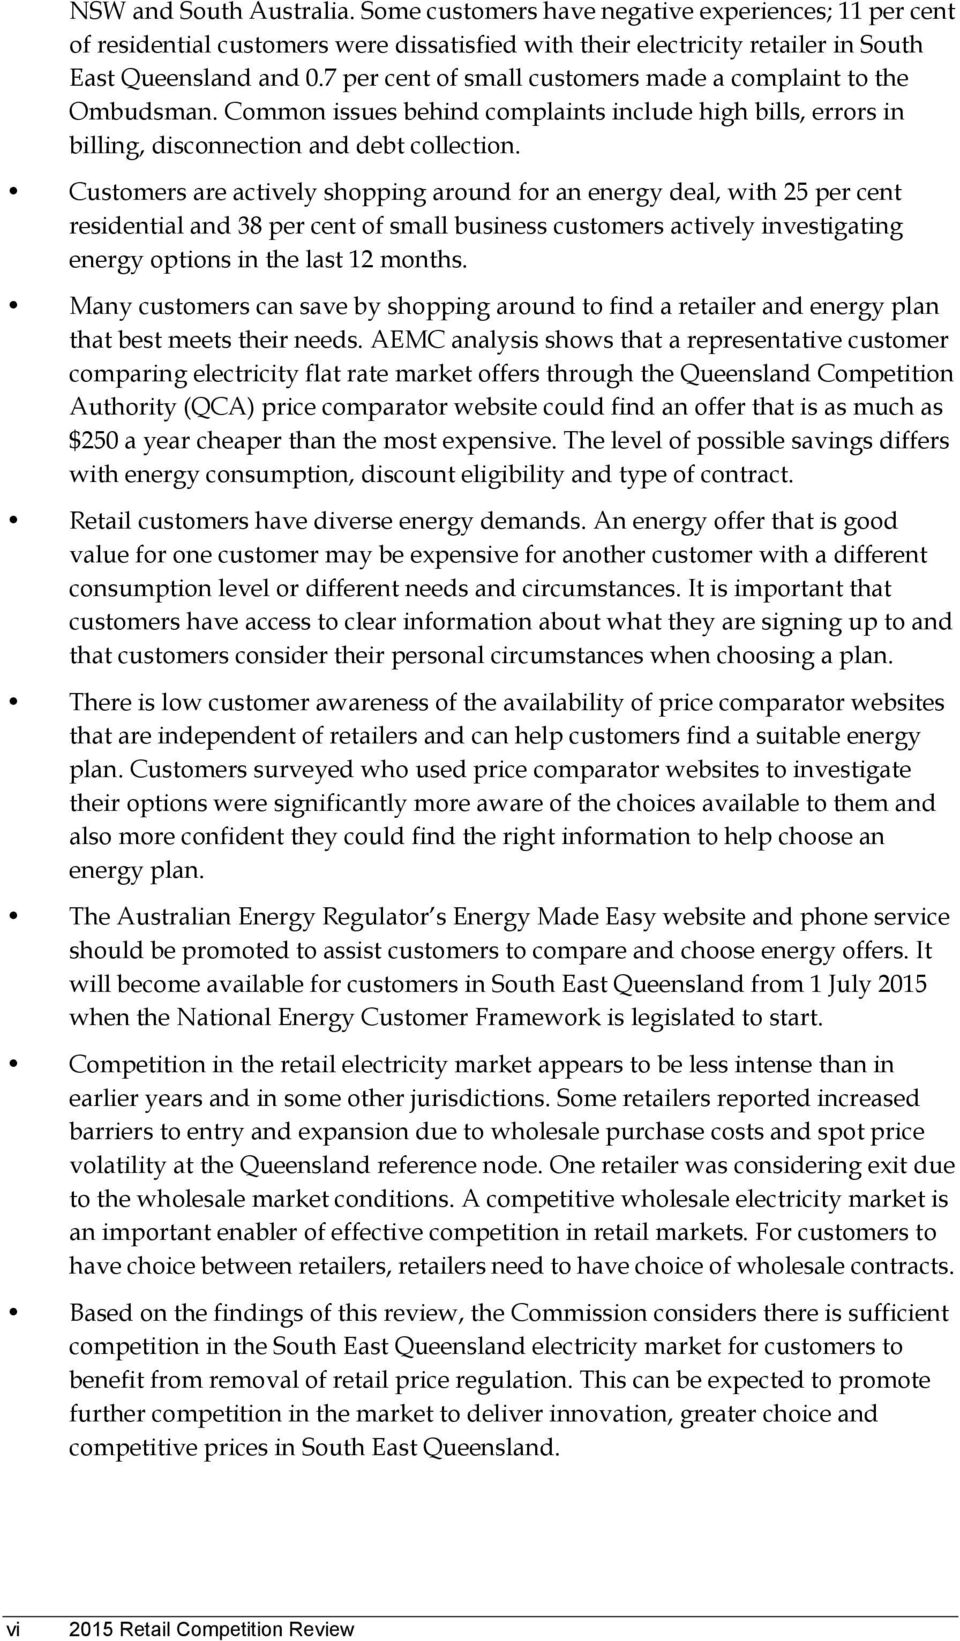 Customers are actively shopping around for an energy deal, with 25 per cent residential and 38 per cent of small business customers actively investigating energy options in the last 12 months.